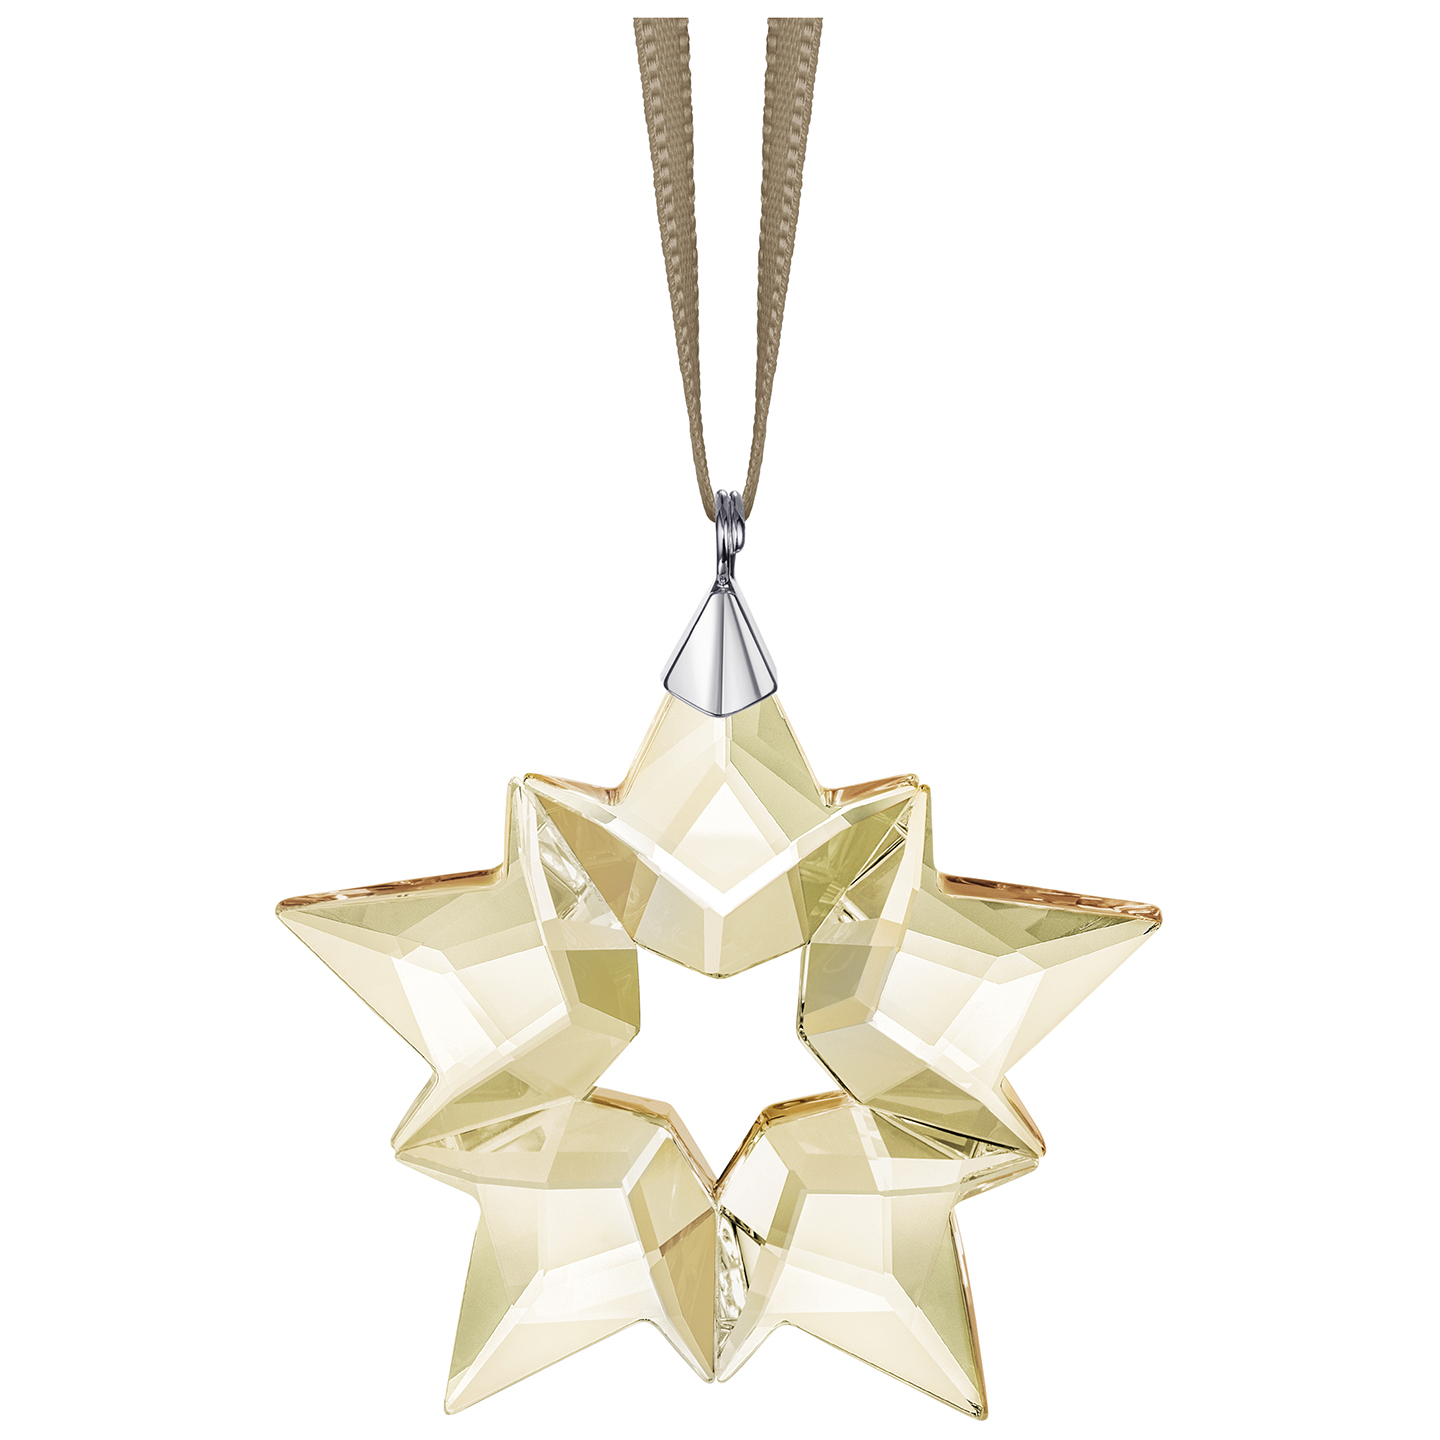 Swarovski Limited Edition SCS Little Star Ornament 5476002